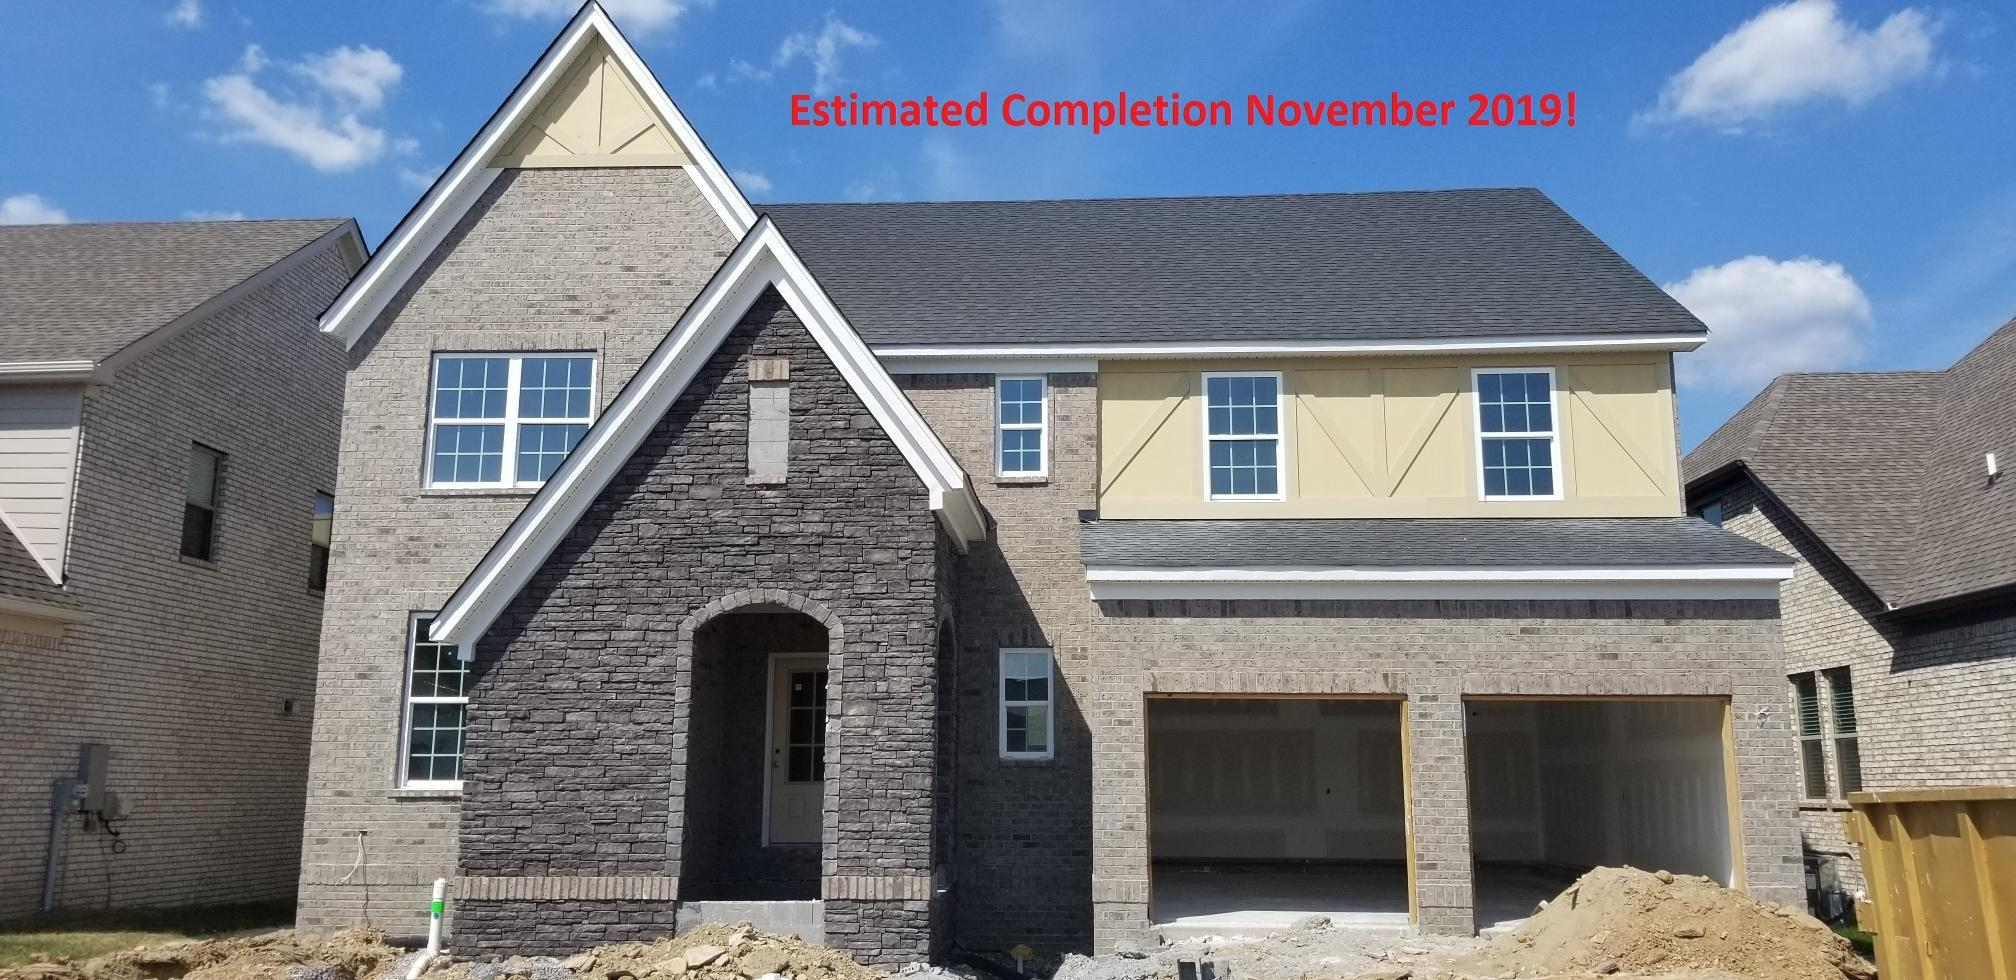 1816 Apperley Drive, Lot 128, Nolensville in Williamson County County, TN 37135 Home for Sale